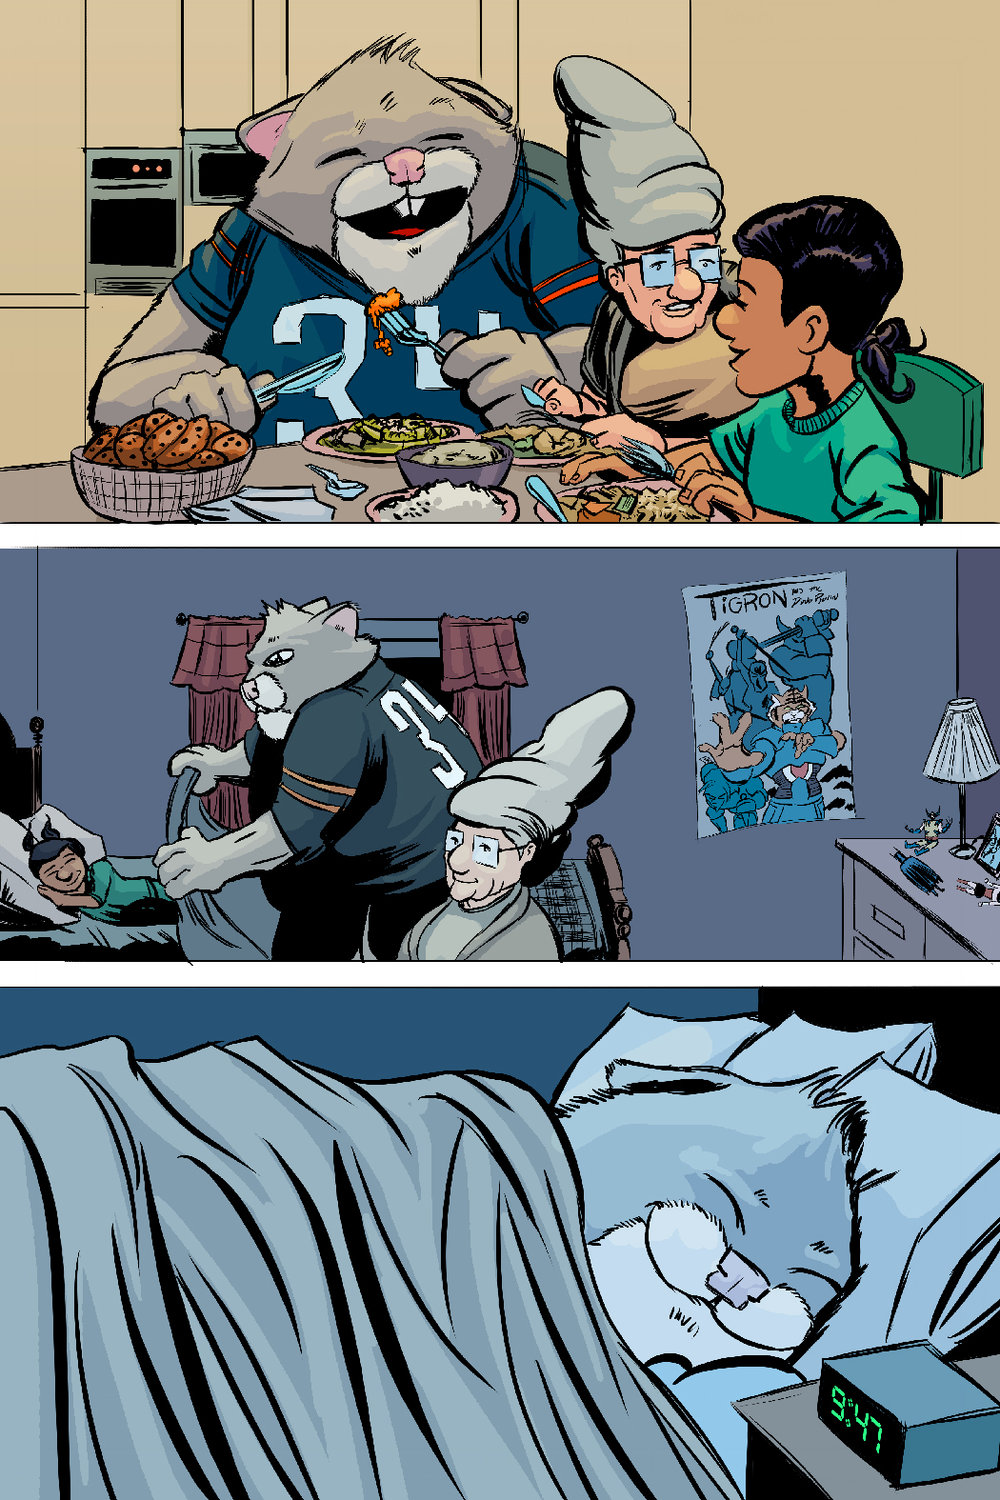 PAGE 81 Panel 1. Roosevelt, Gram Gram and Shayna eat Chinese Food at the dinner table.  Panel 2. Roosevelt tucks Shayna into bed.  Panel 3. Roosevelt smiles as he curls into bed